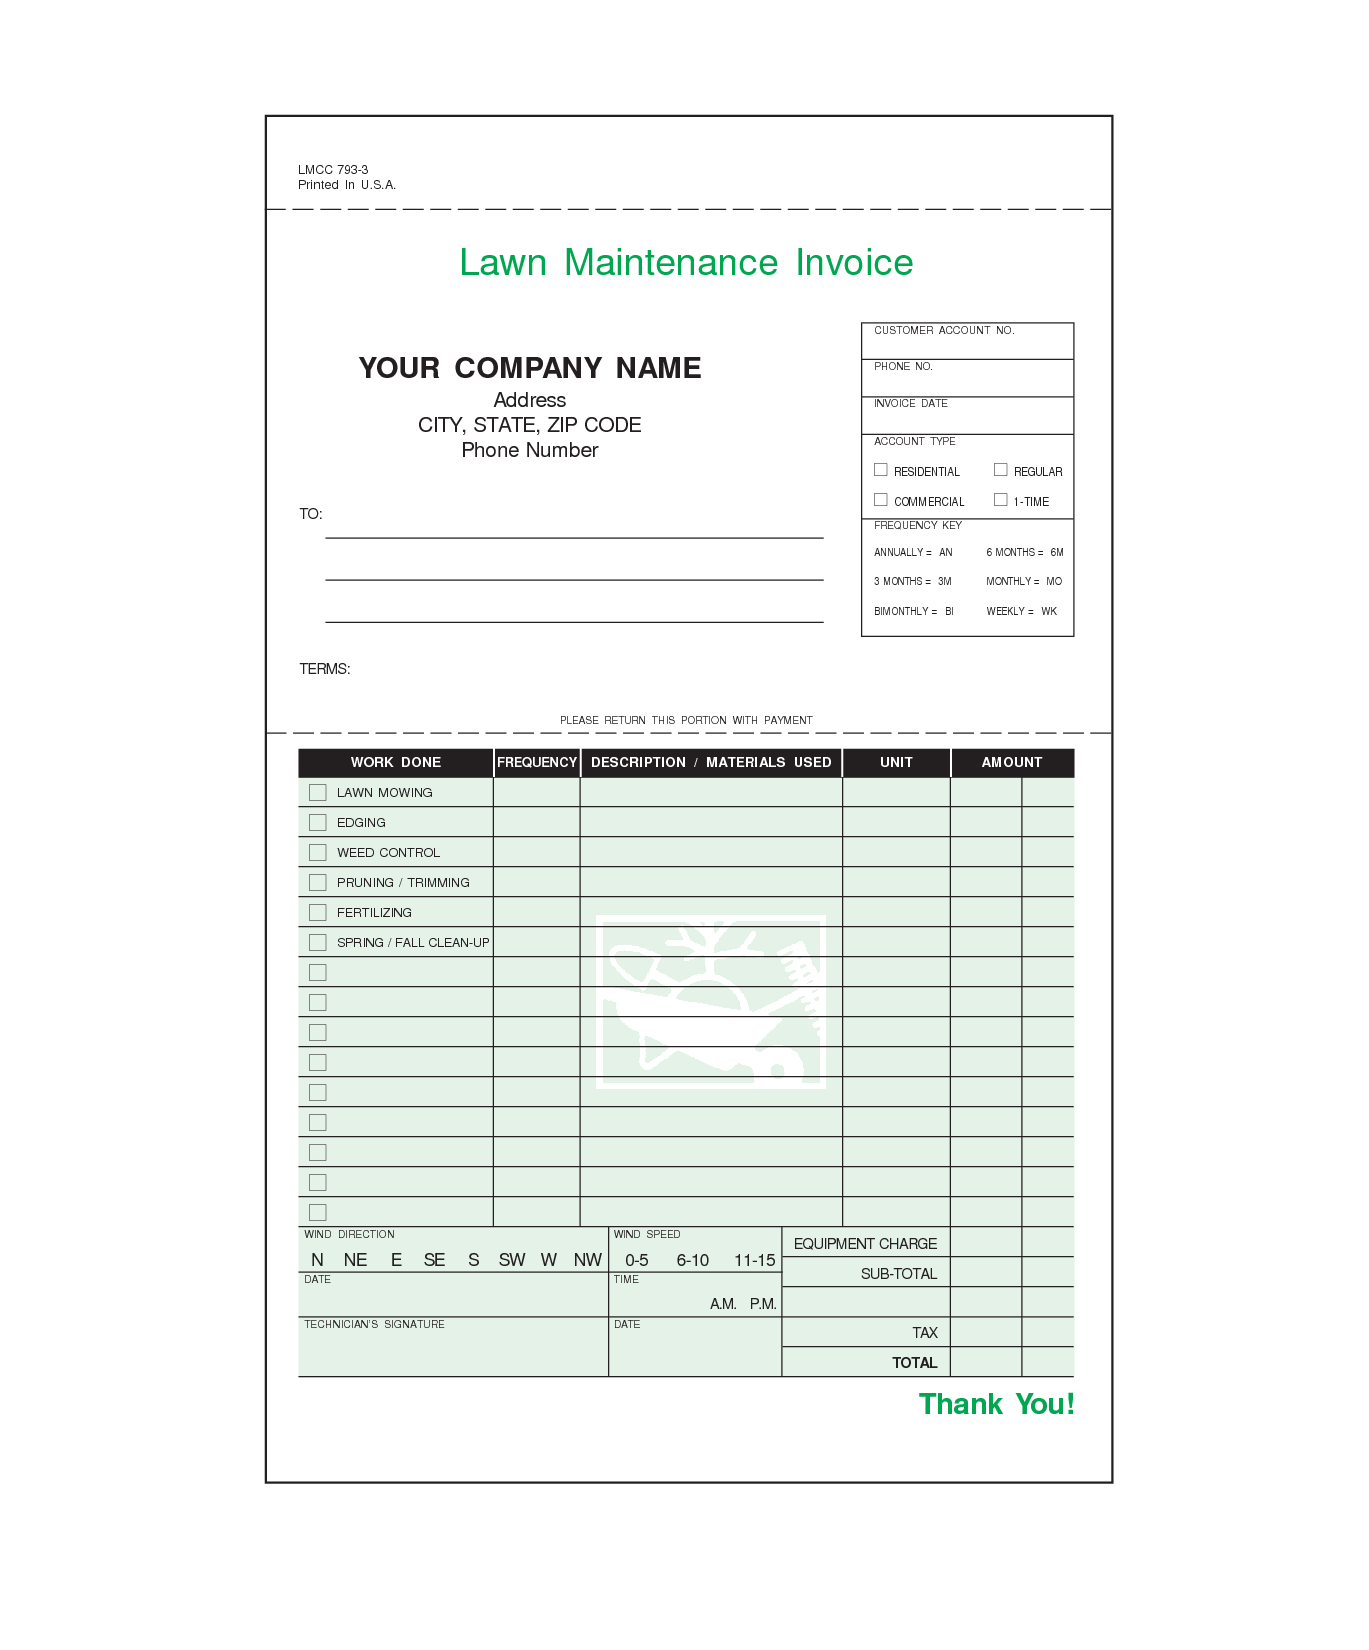 Billing Invoice Template Pdf and Lawn Care Invoice Template Pdf Firmsinjafo